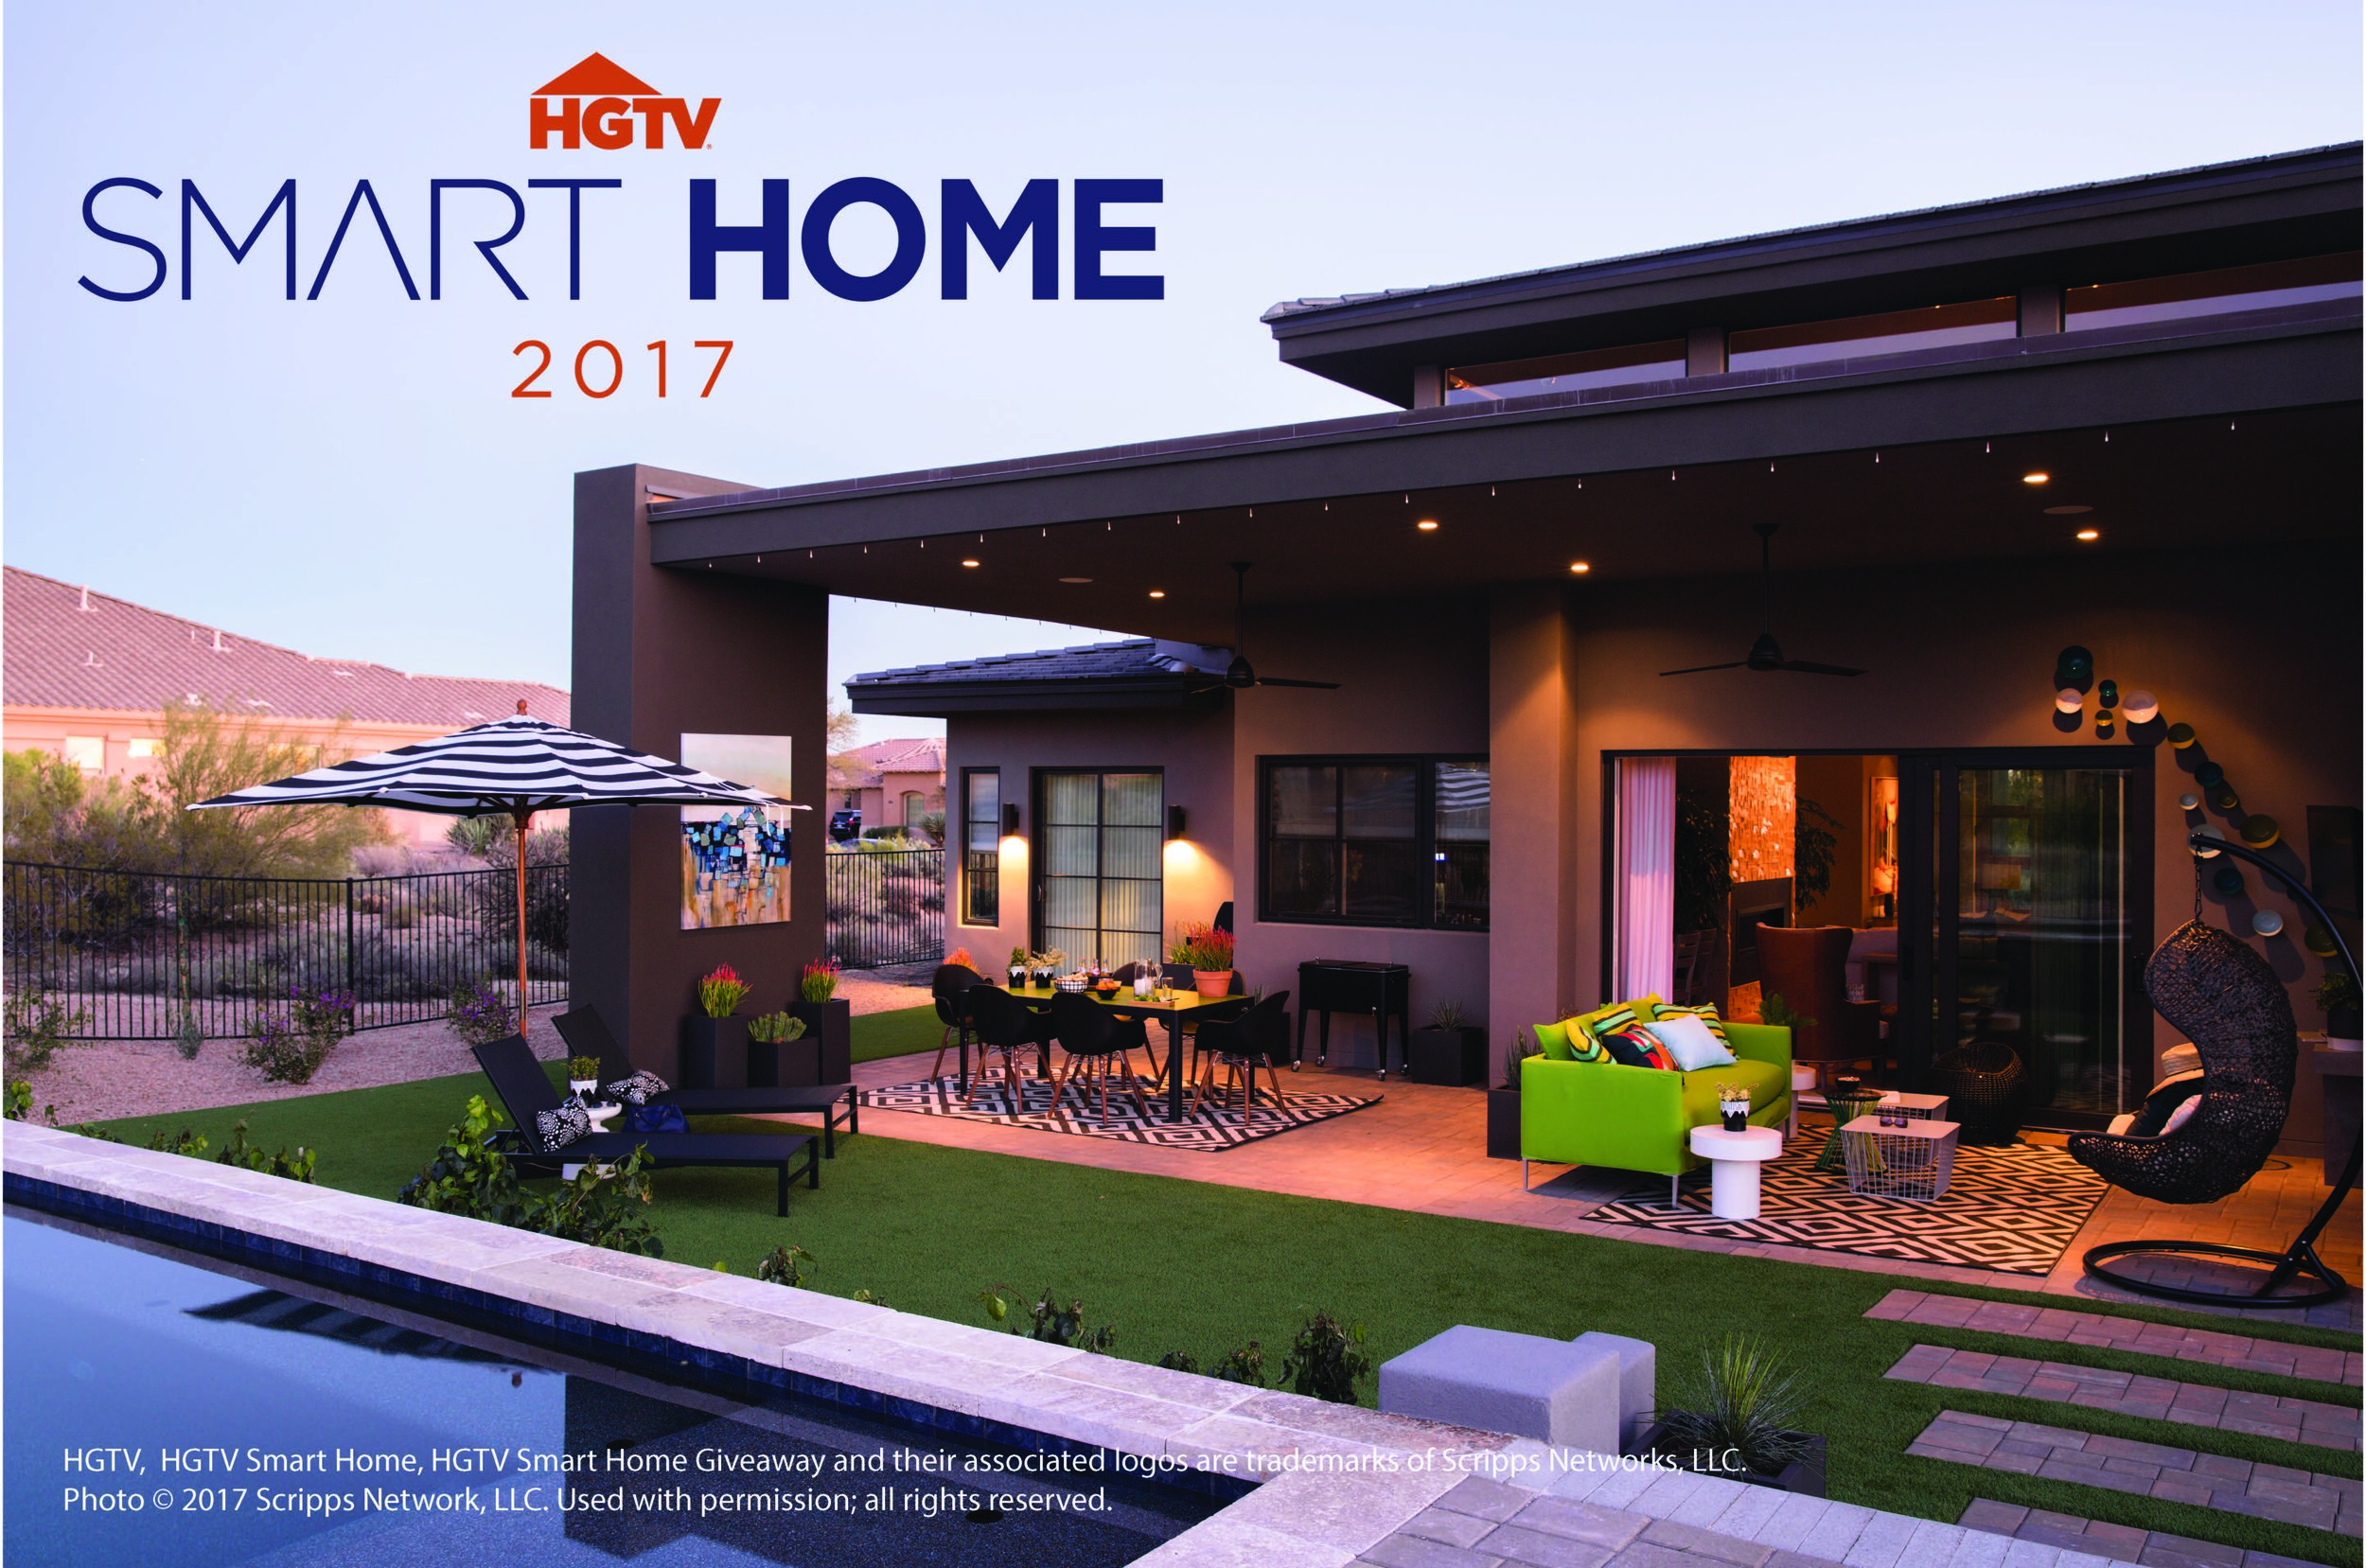 HGTV Smart Home 2017 backyard.jpg